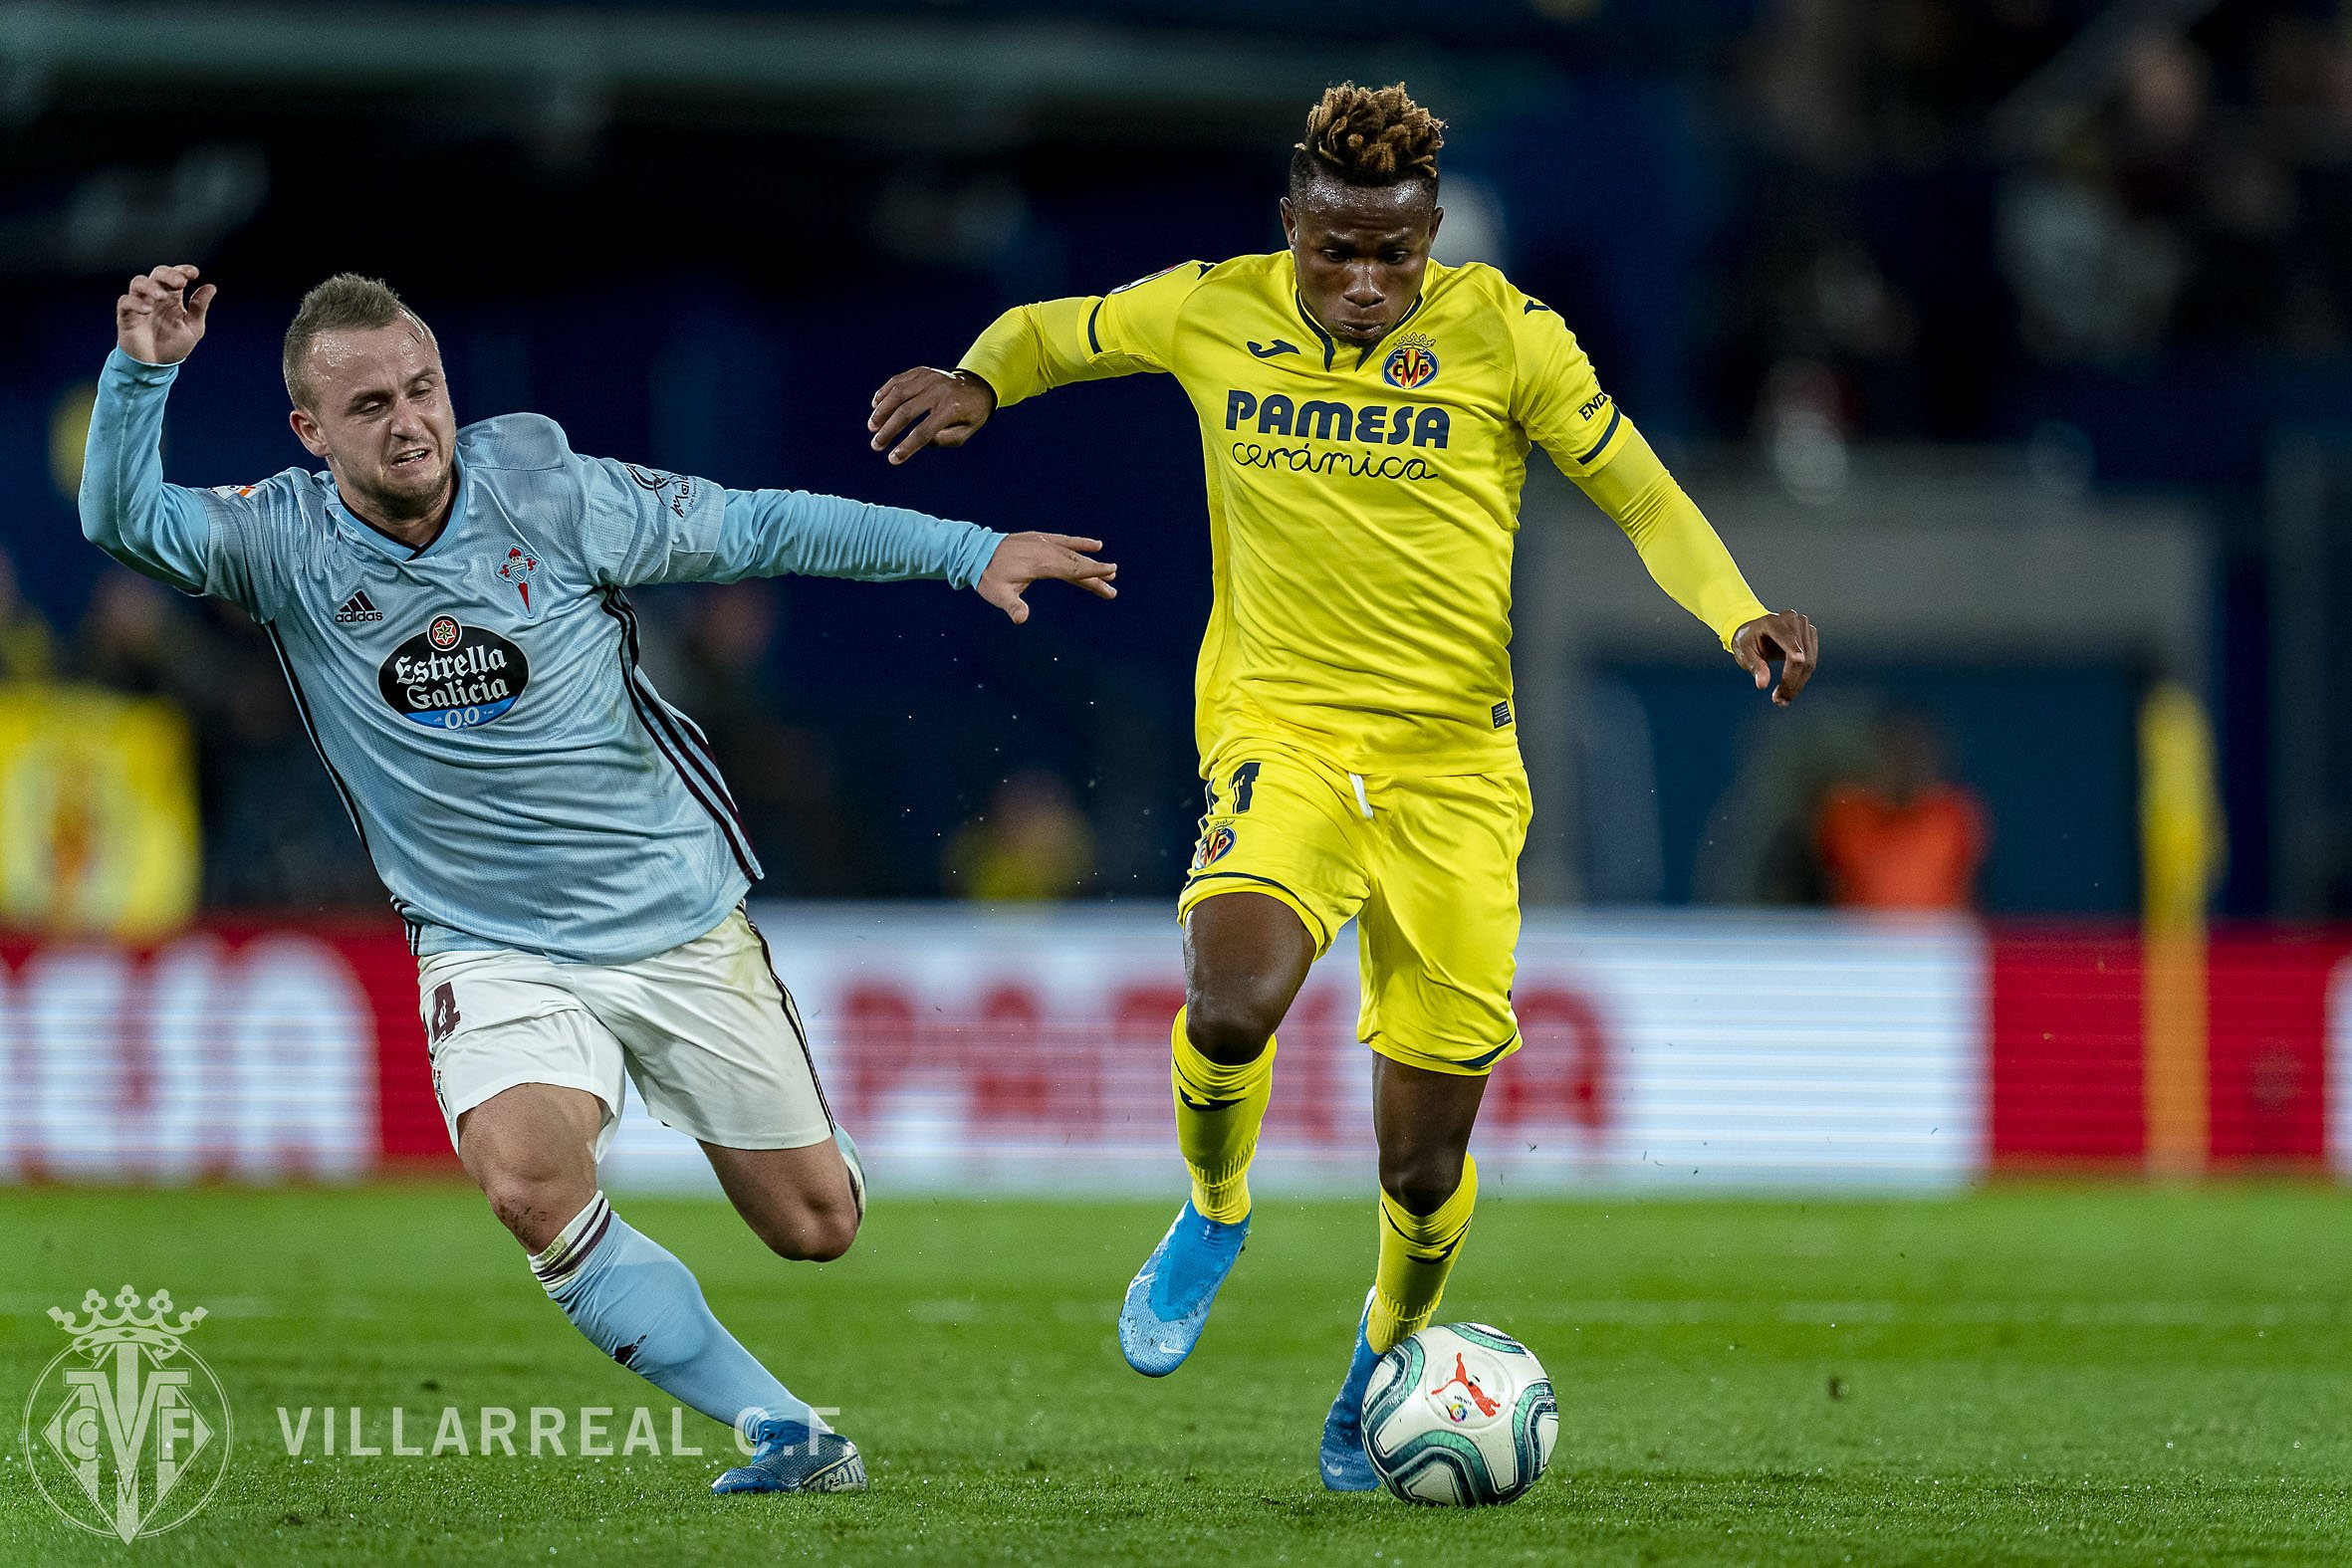 Eagles Roundup: Chukuweze Ends LaLiga Goal Drought, Ejuke Bags Assist in Heerenveen Defeat To PSV